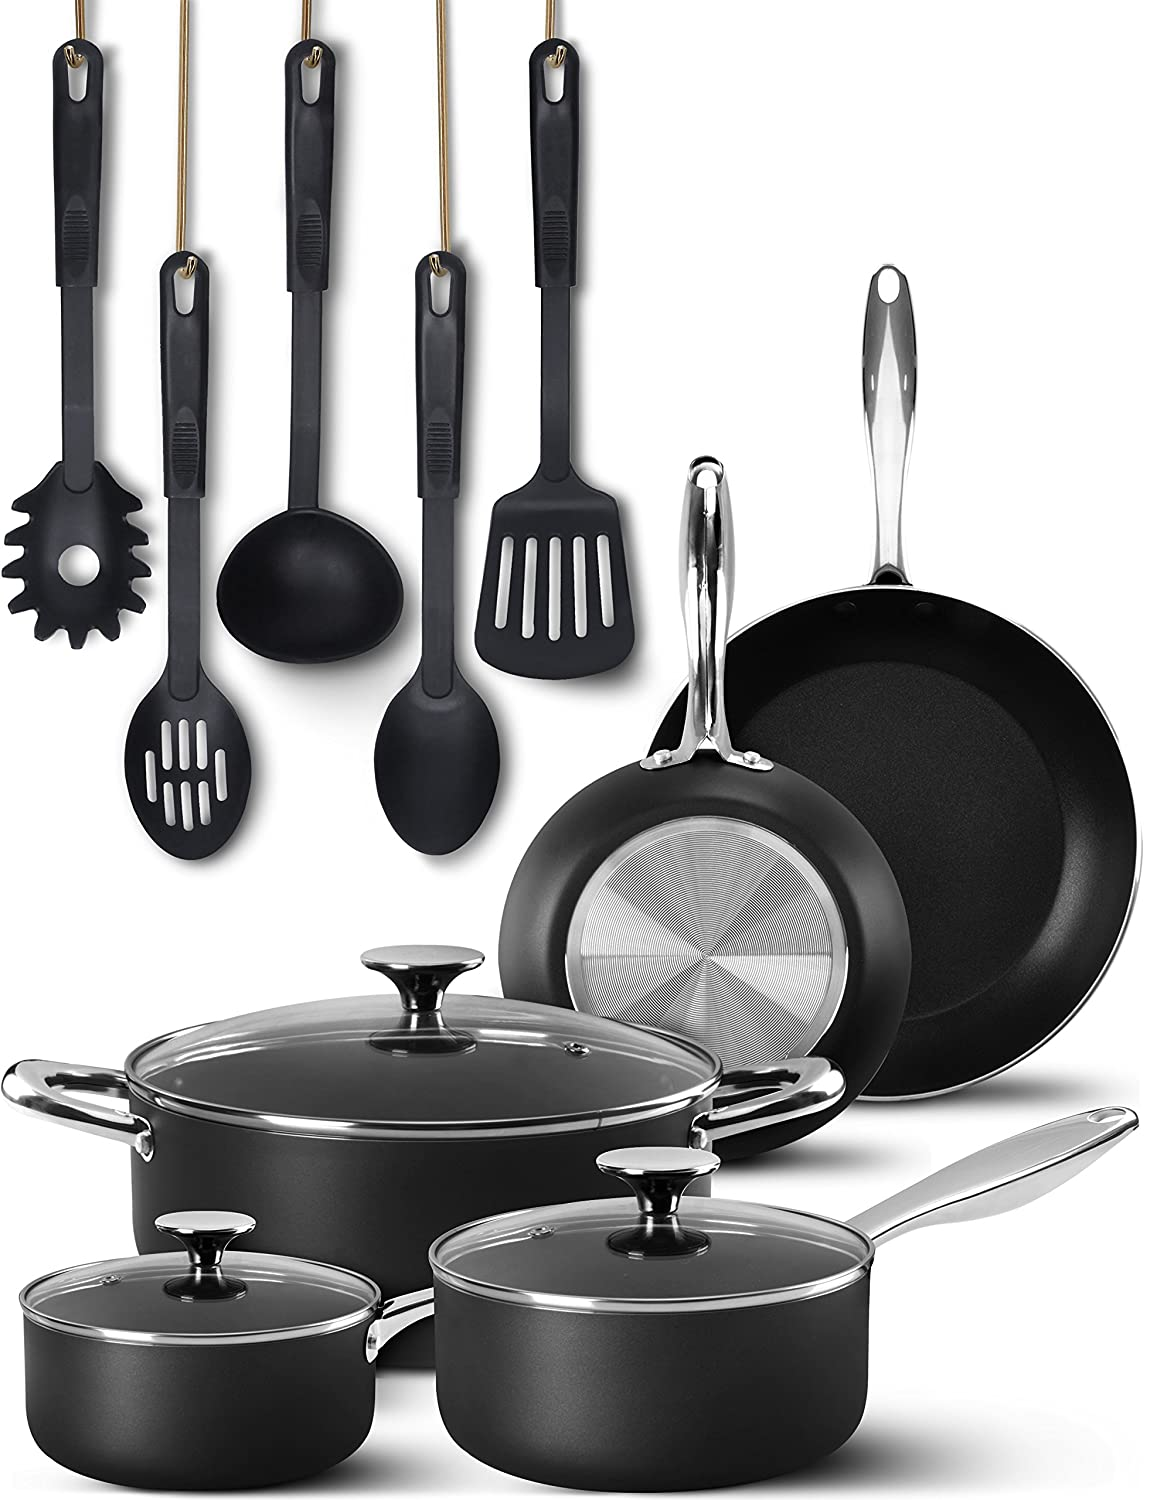 13 Pieces Cookware Set - Stainless Steel Handle - Black, Highly Durable, Even Heat Distribution, Double Nonstick Coating